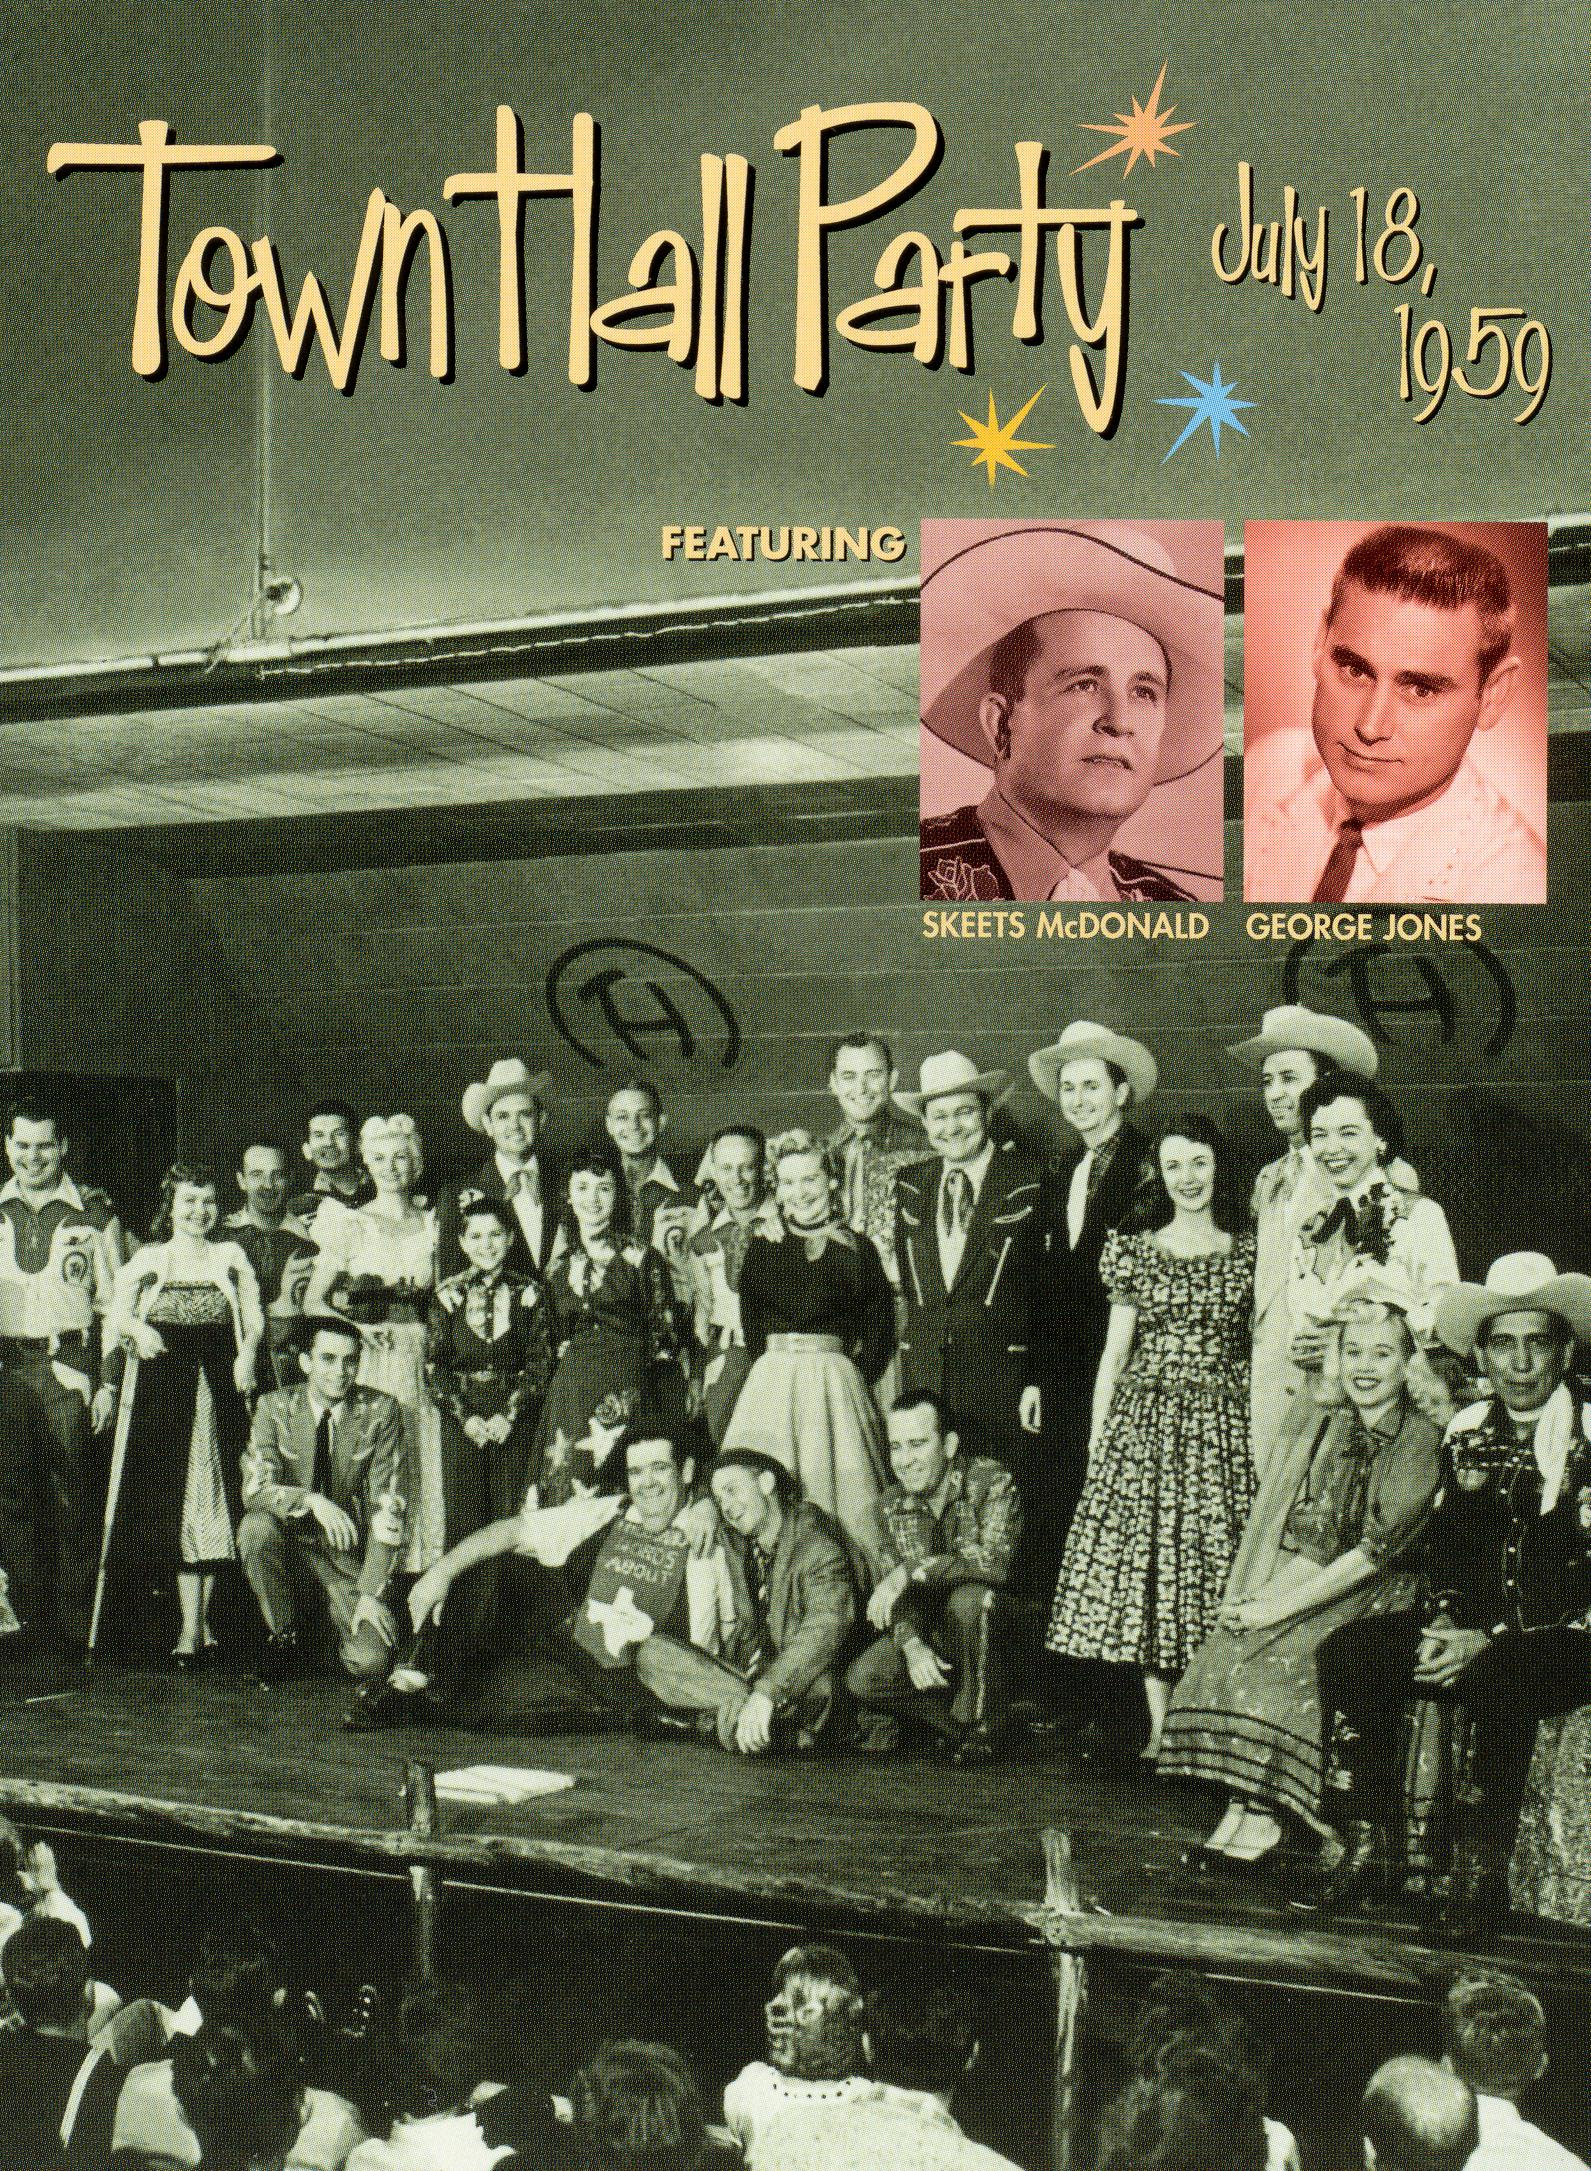 Town Hall Party: July 18, 1959